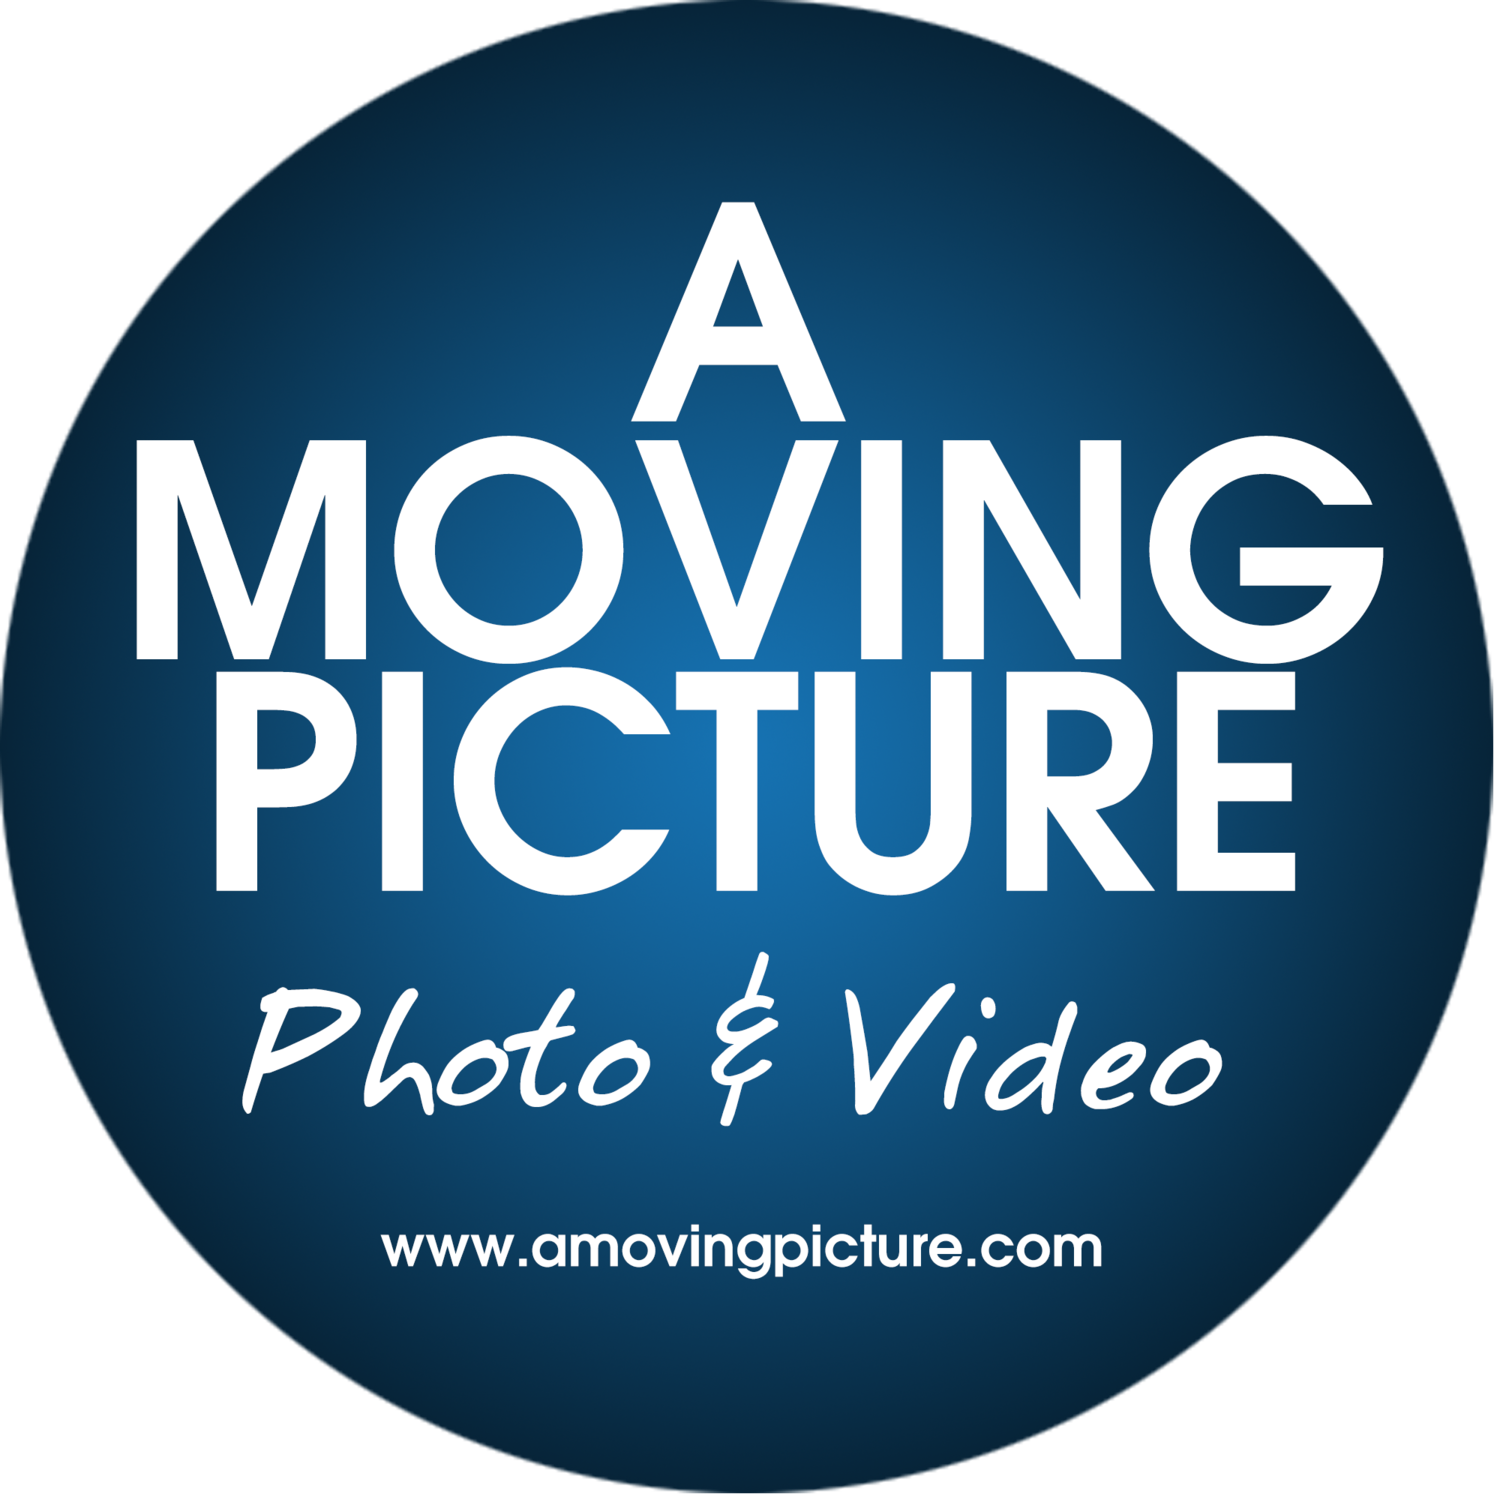 A Moving Picture Studios